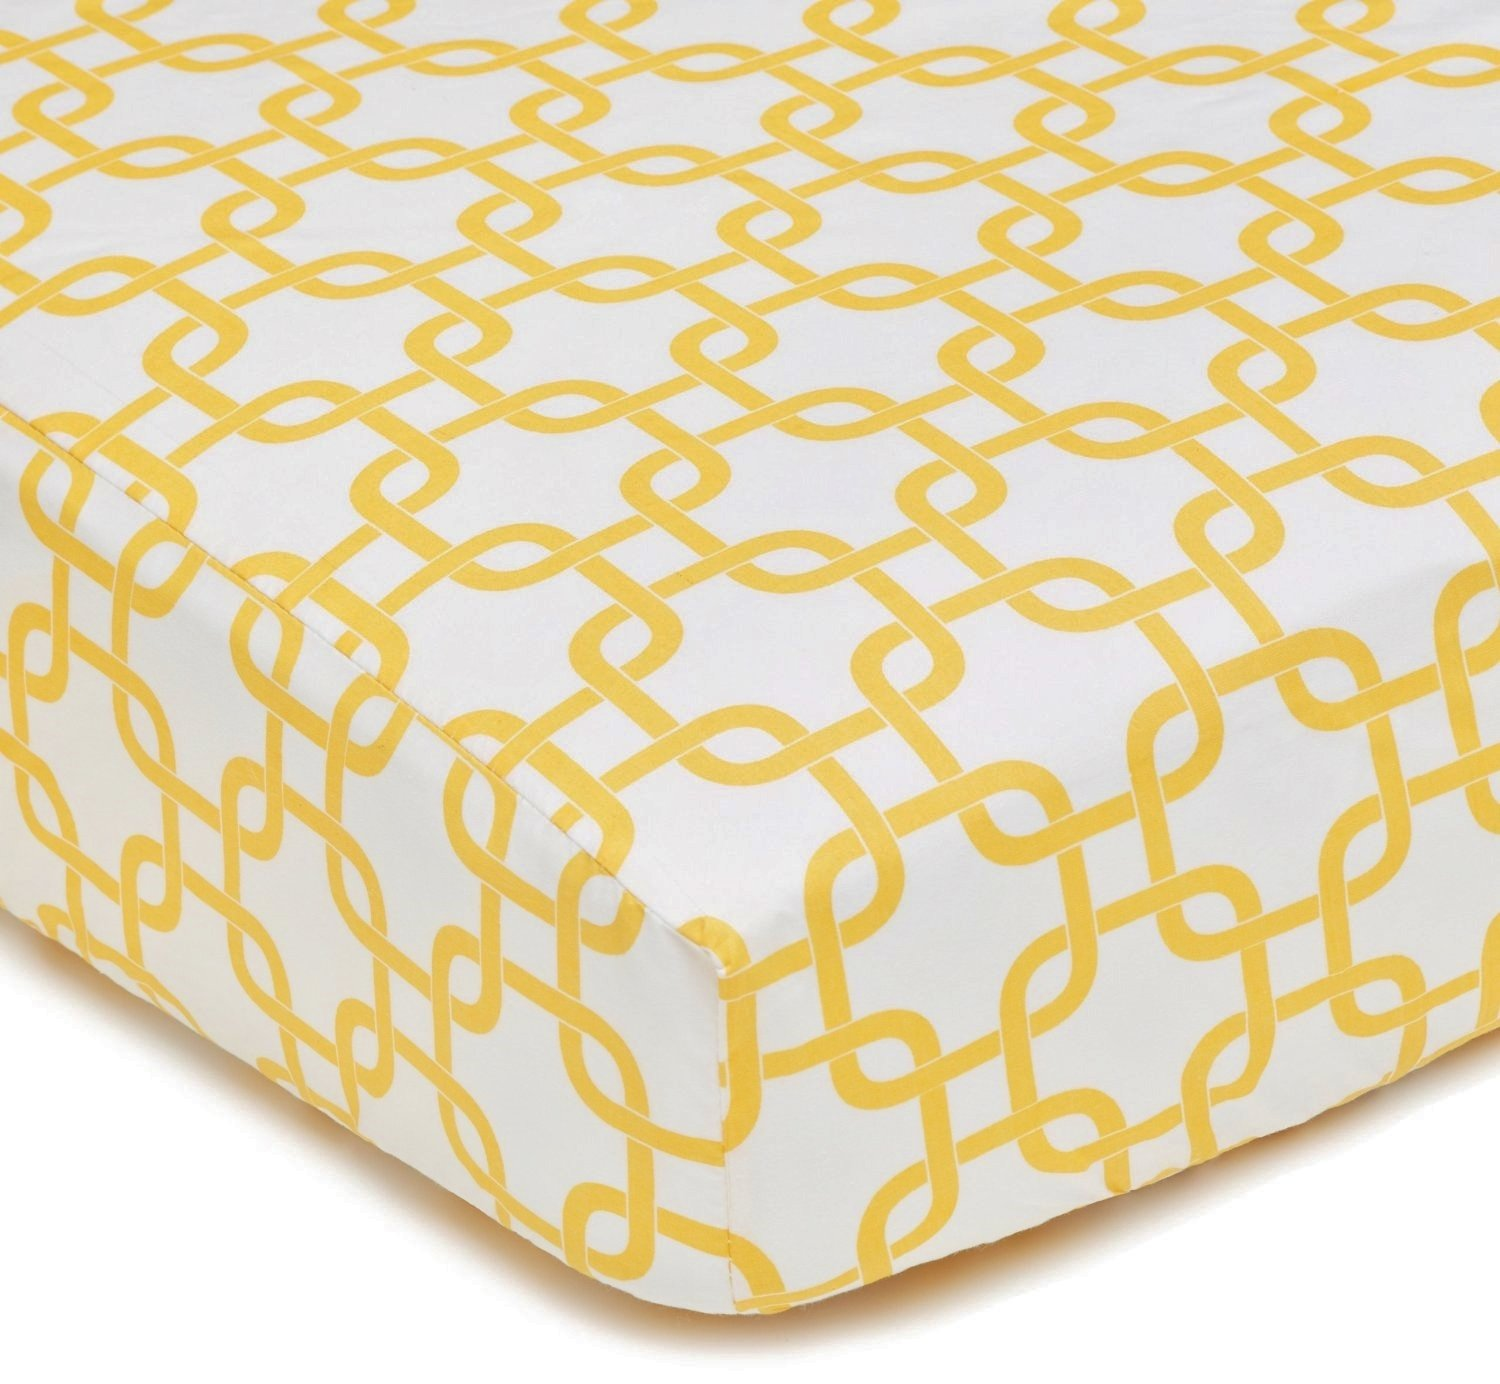 American Baby Company 100% Cotton Percale Fitted Crib Sheet for Standard Crib and Toddler Mattresses, Golden Yellow Twill Gotcha